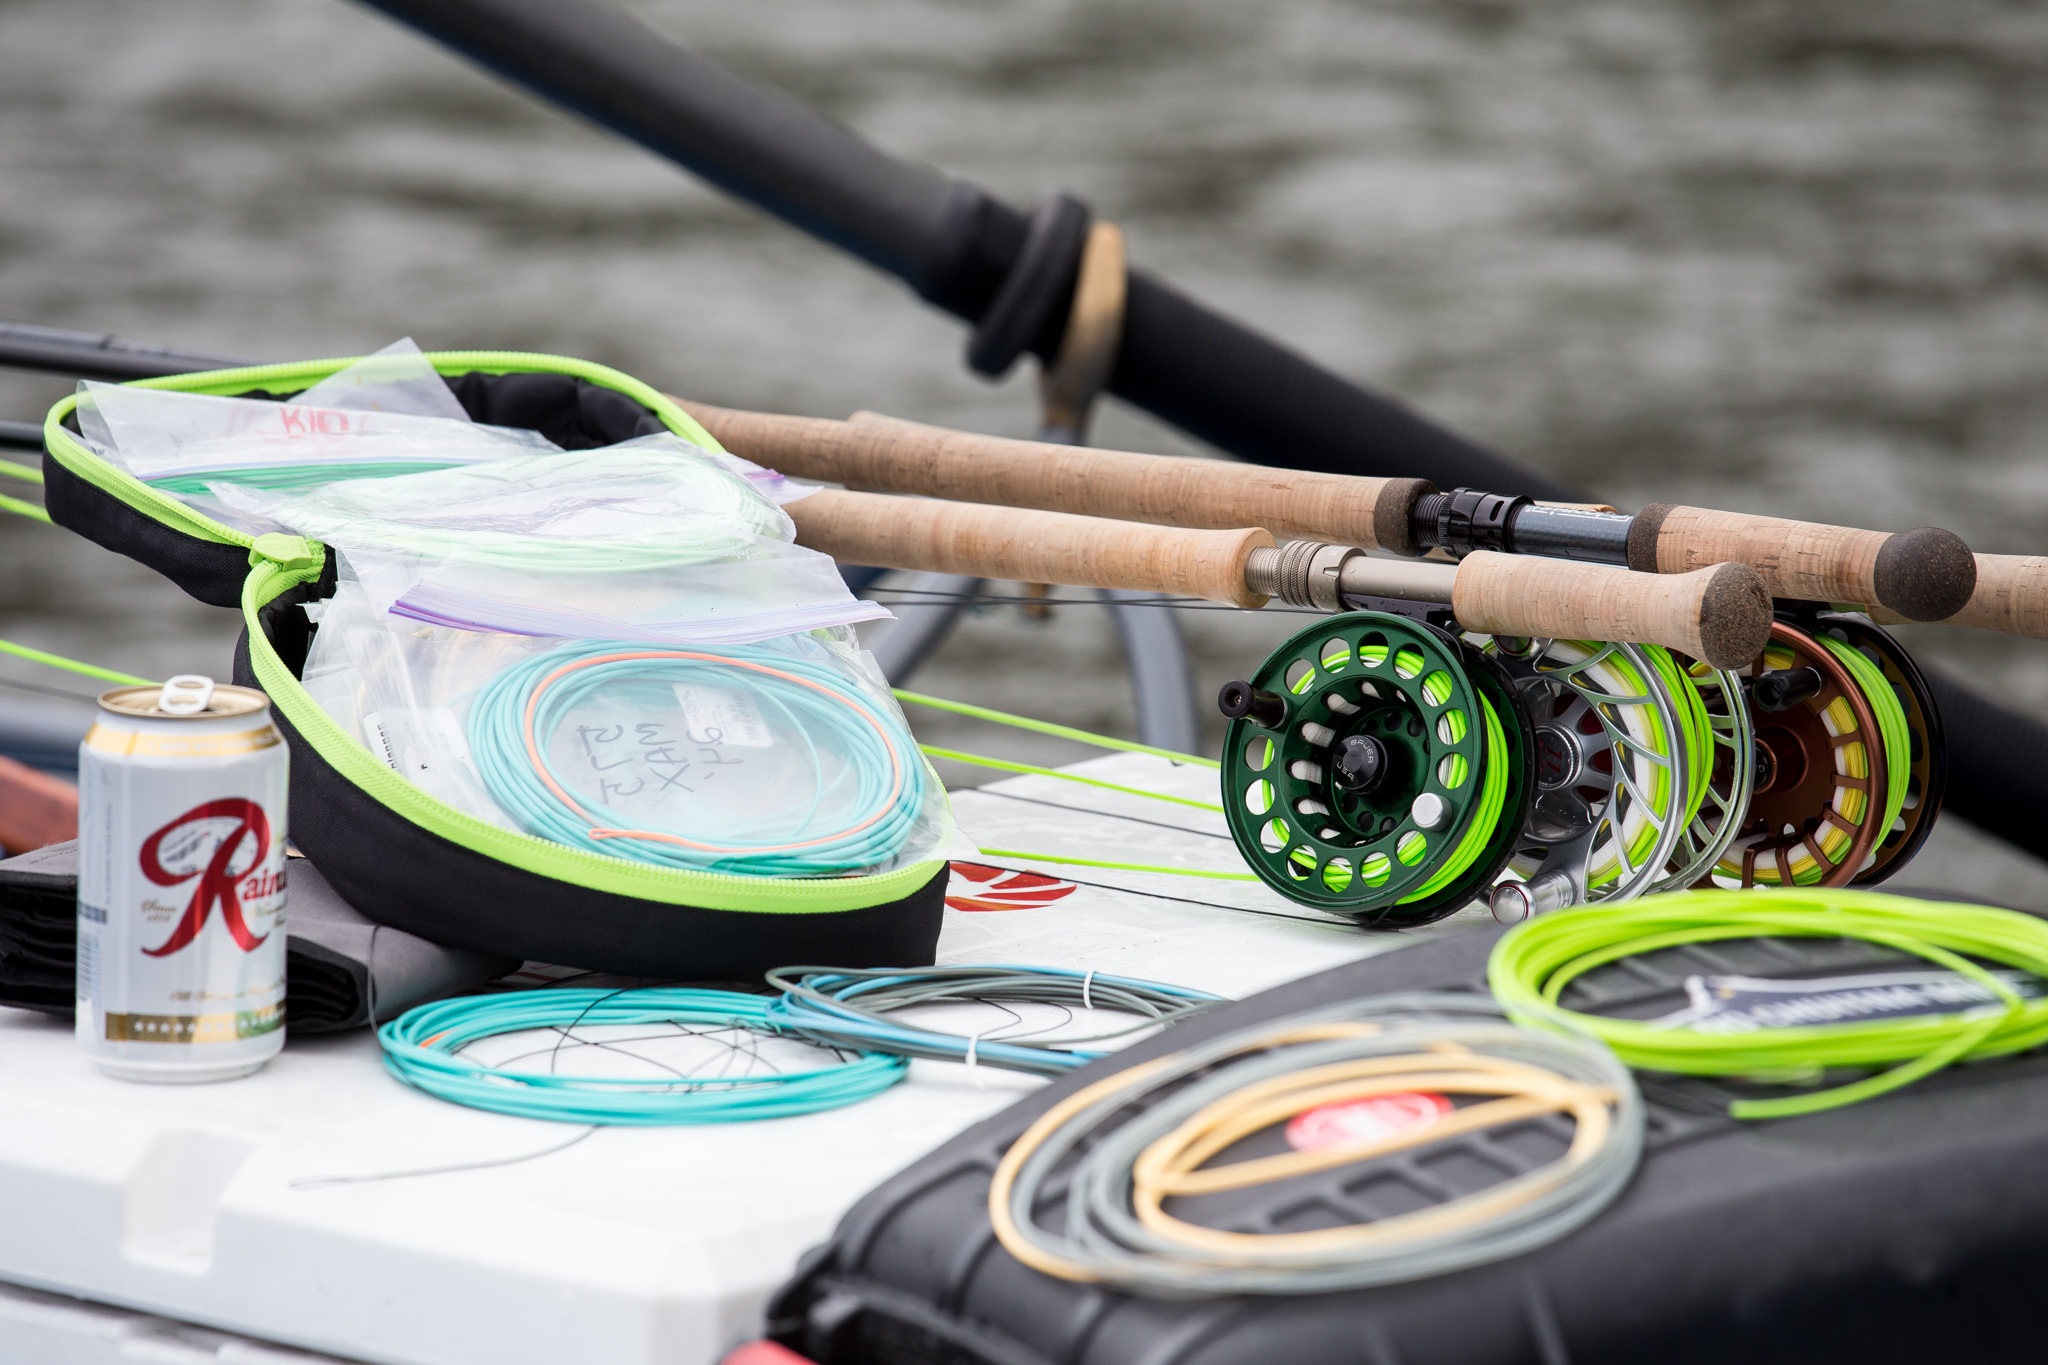 Lines, Lines, and Lines...the single topic that seems to cause the most confusion (perhaps frustration) for anglers trying to get into the spey game. Shown above: a variety of Skagit lines being prepared for rigorous testing.